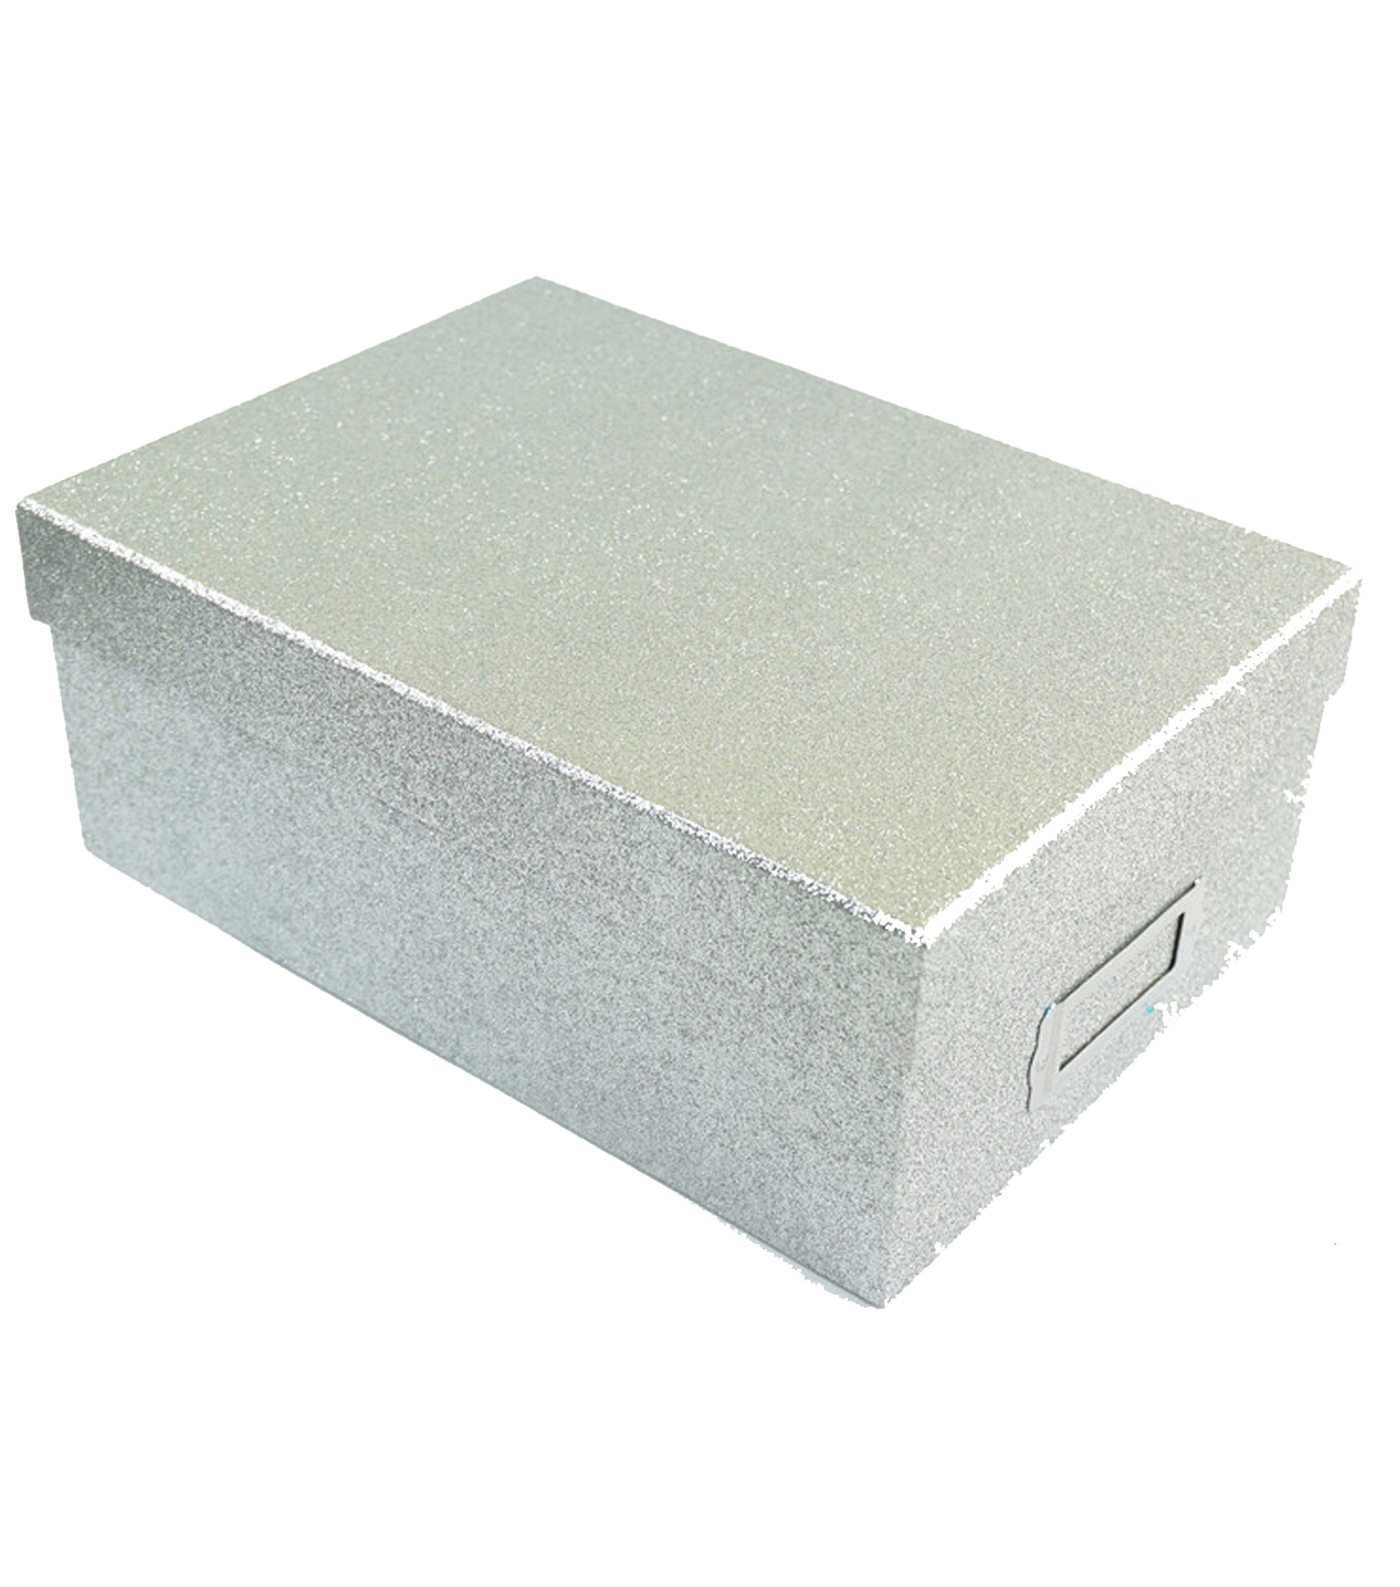 Incroyable Silver Glitter Photo Storage Box